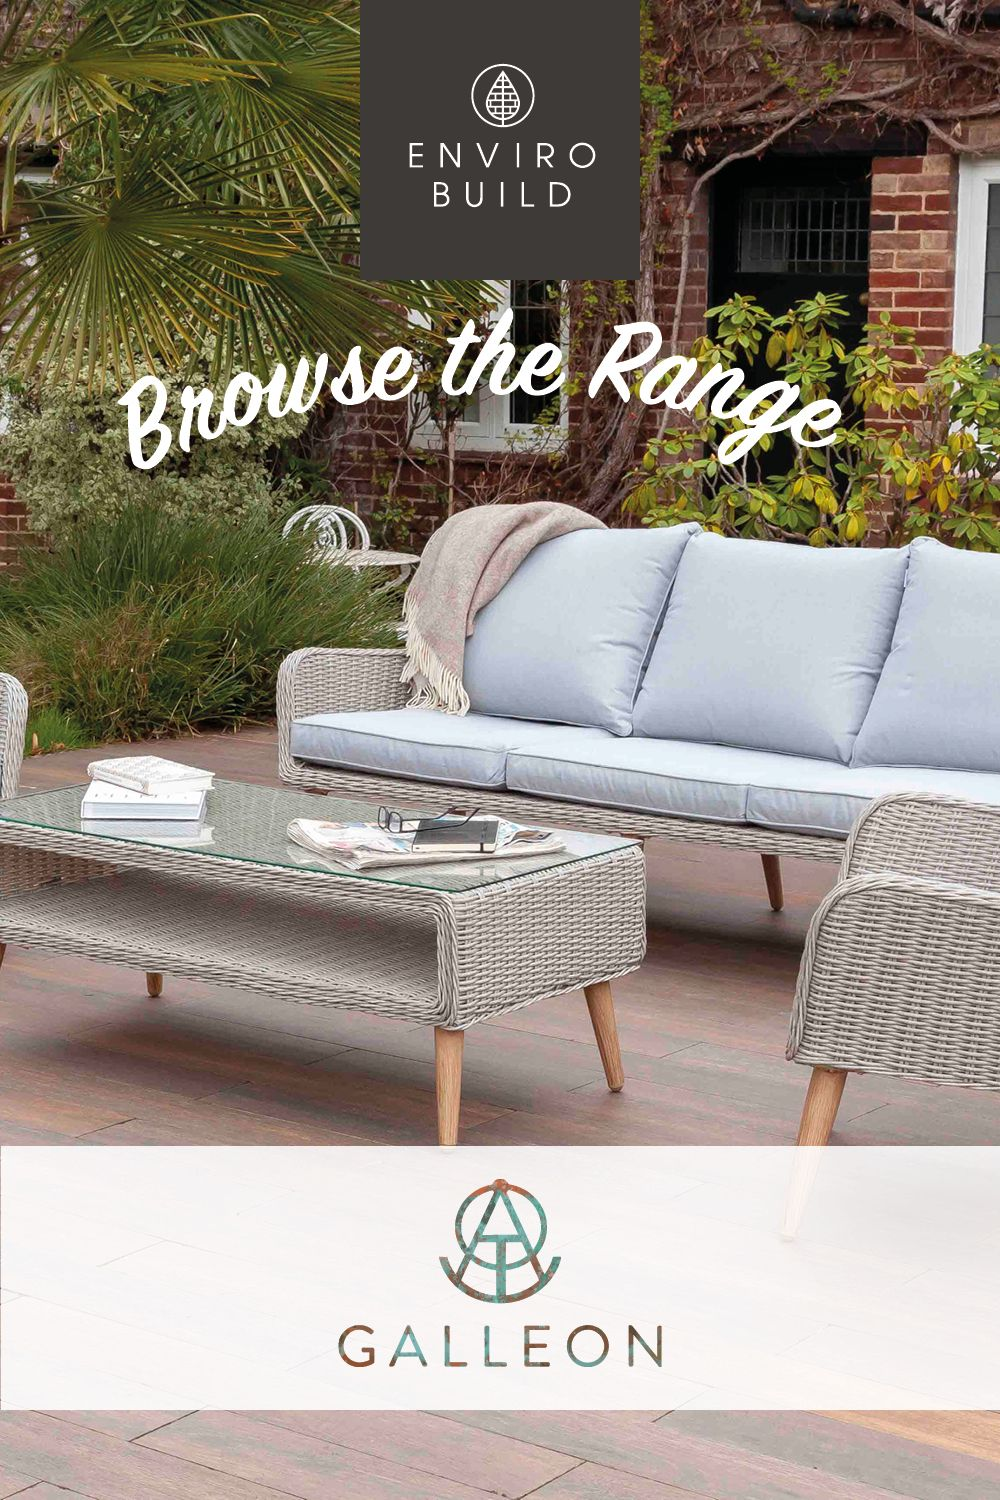 Luxury, allweather rattan sofa sets made from 100